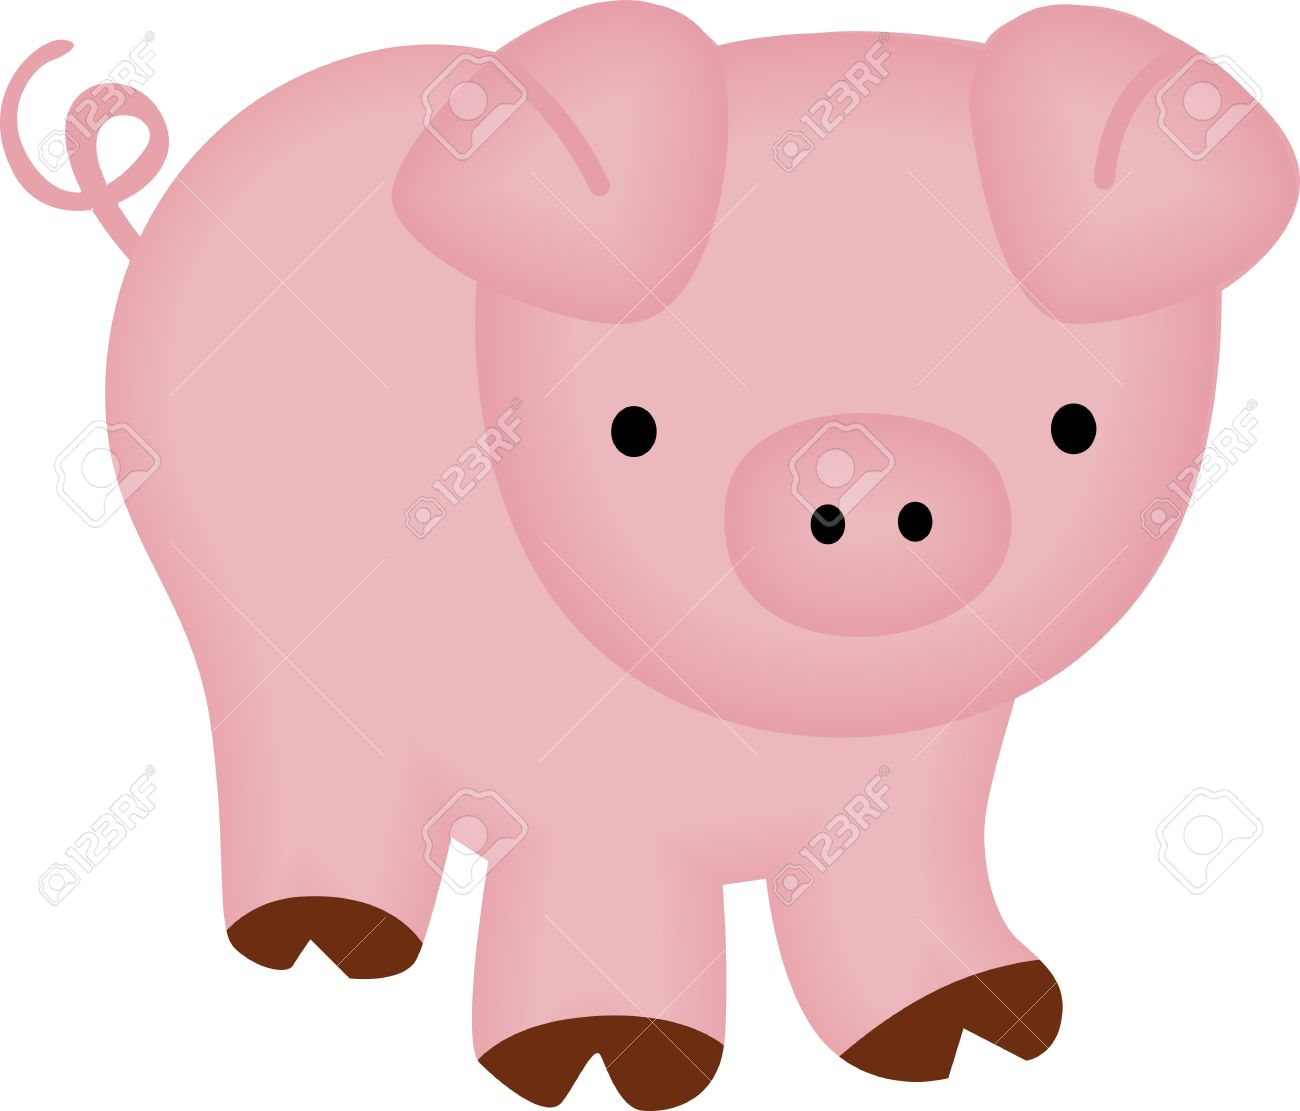 Cute Piggy Royalty Free Cliparts, Vectors, And Stock Illustration.